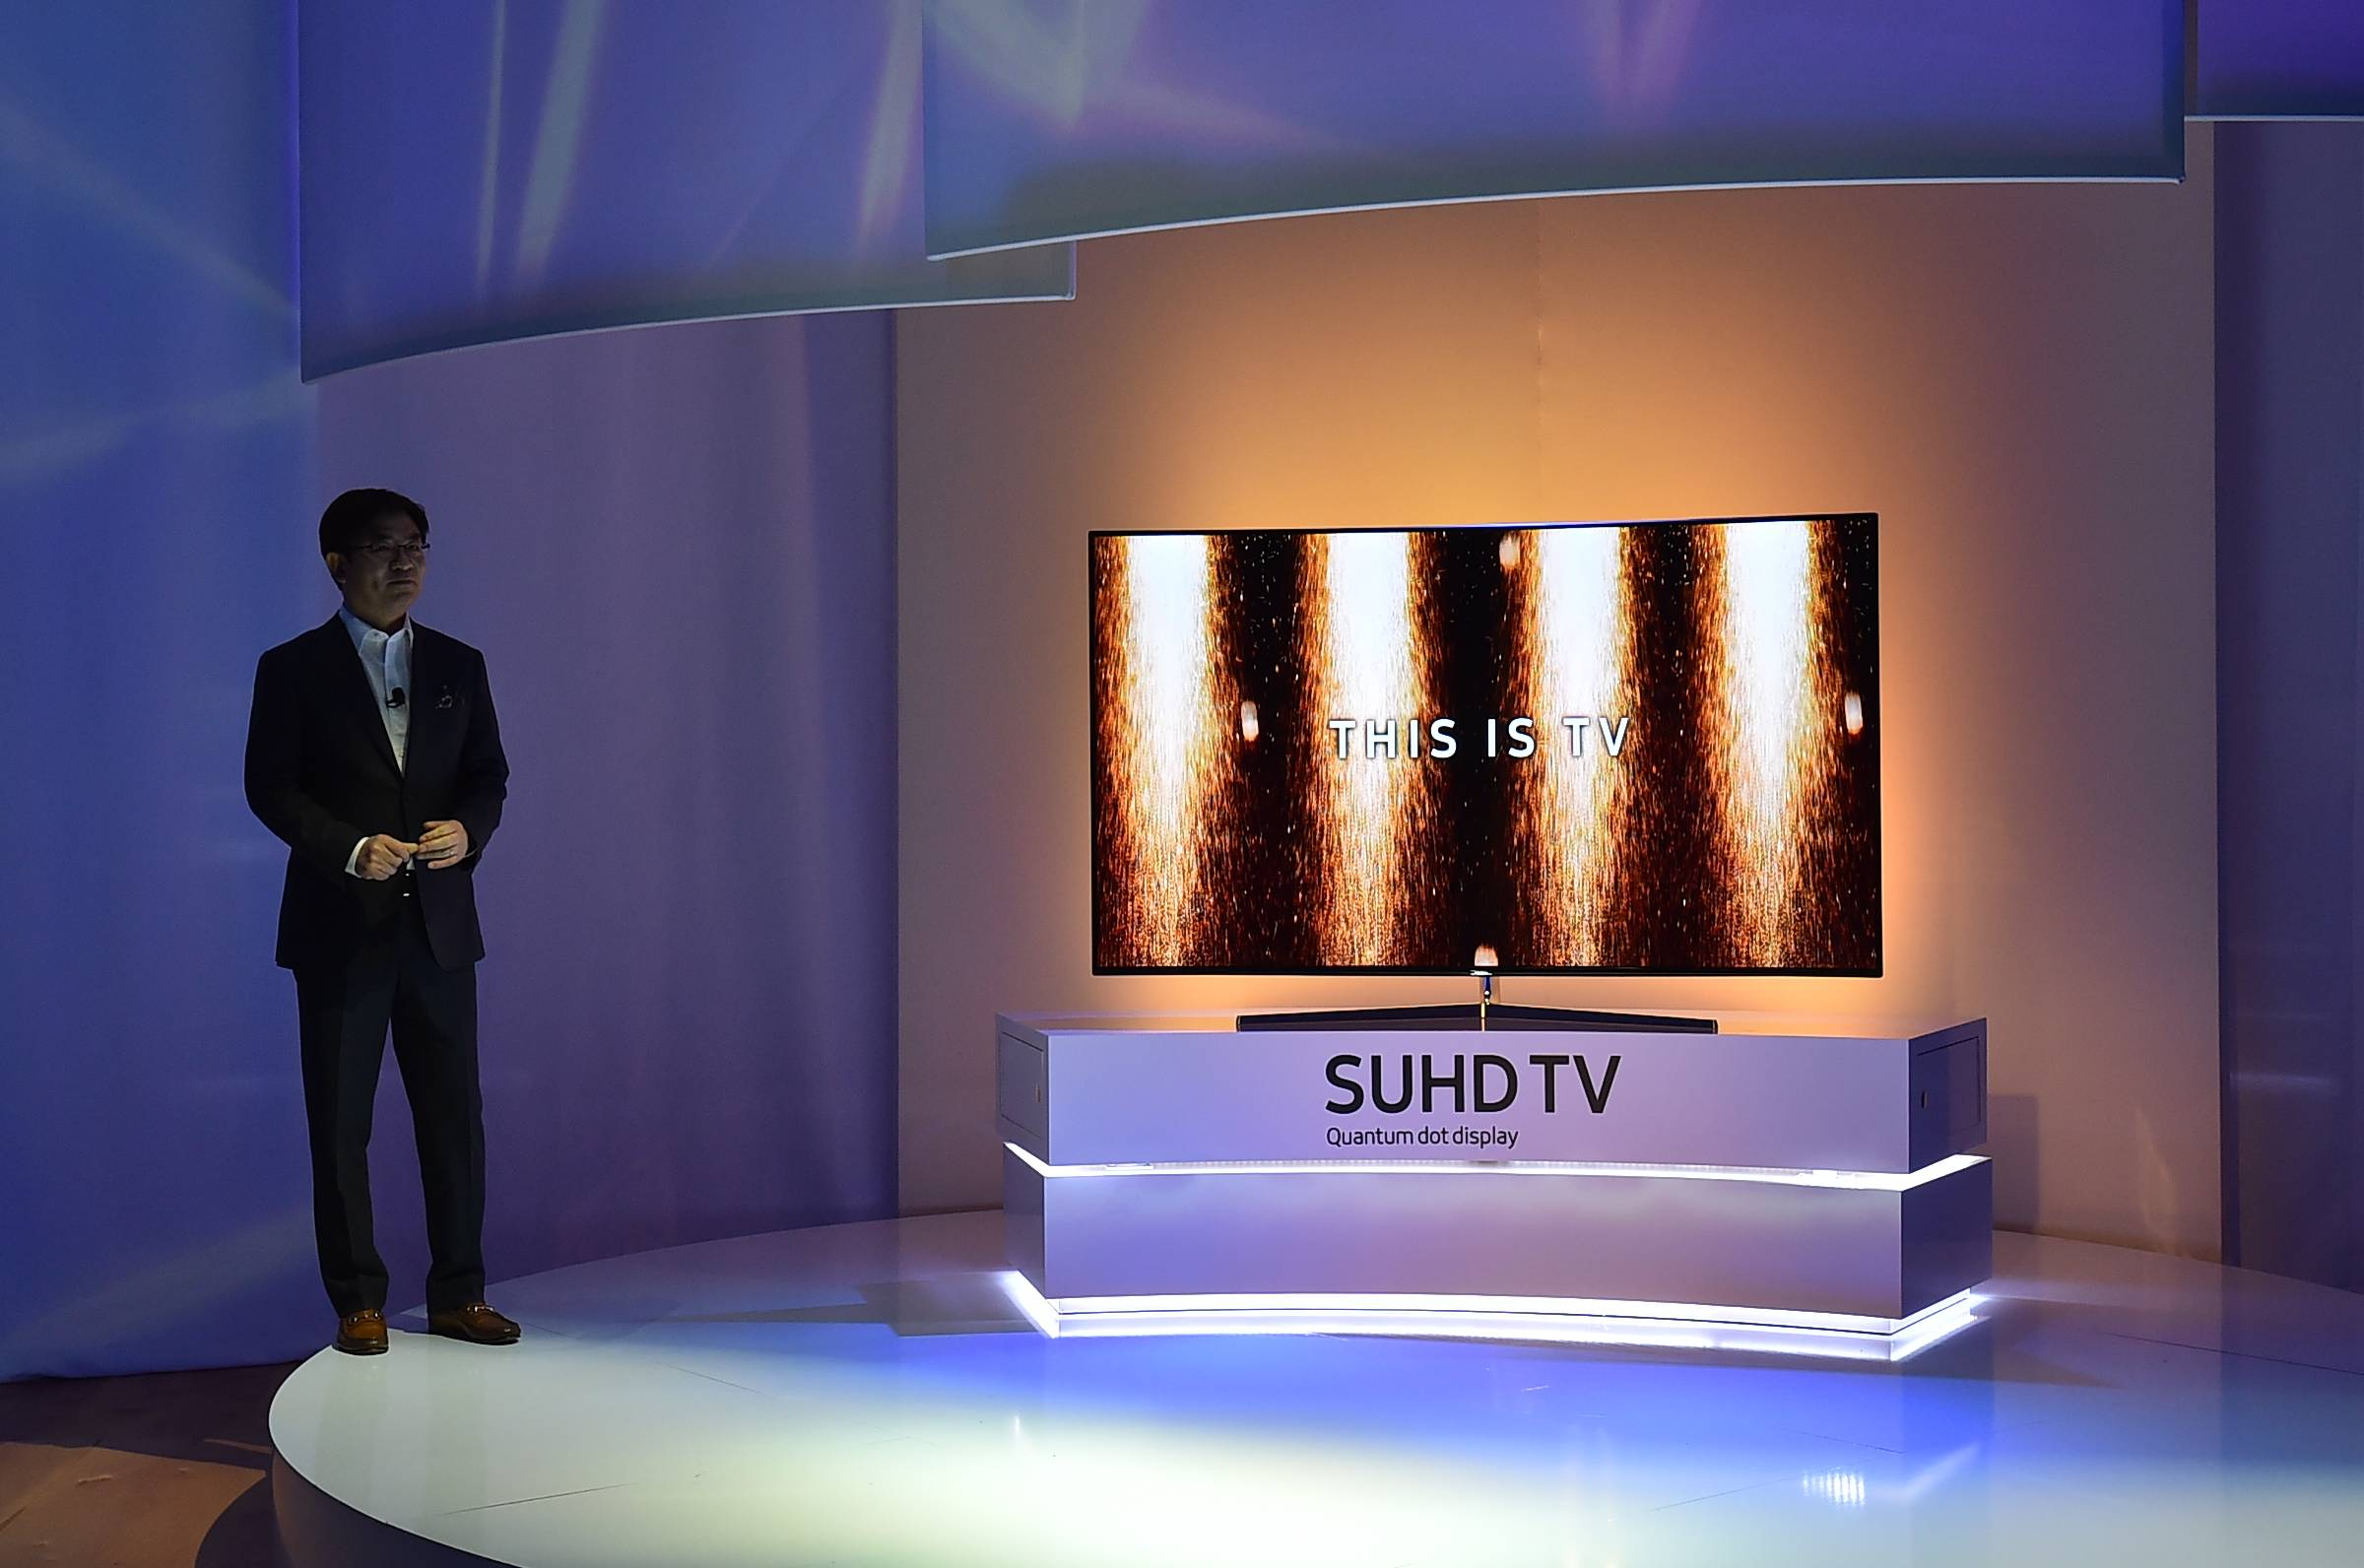 2016 CES Samsung First Look on Monday, Jan. 4, 2016, in Las Vegas, Nev. (Photo by Jordan Strauss/Invision for Samsung/AP Images)